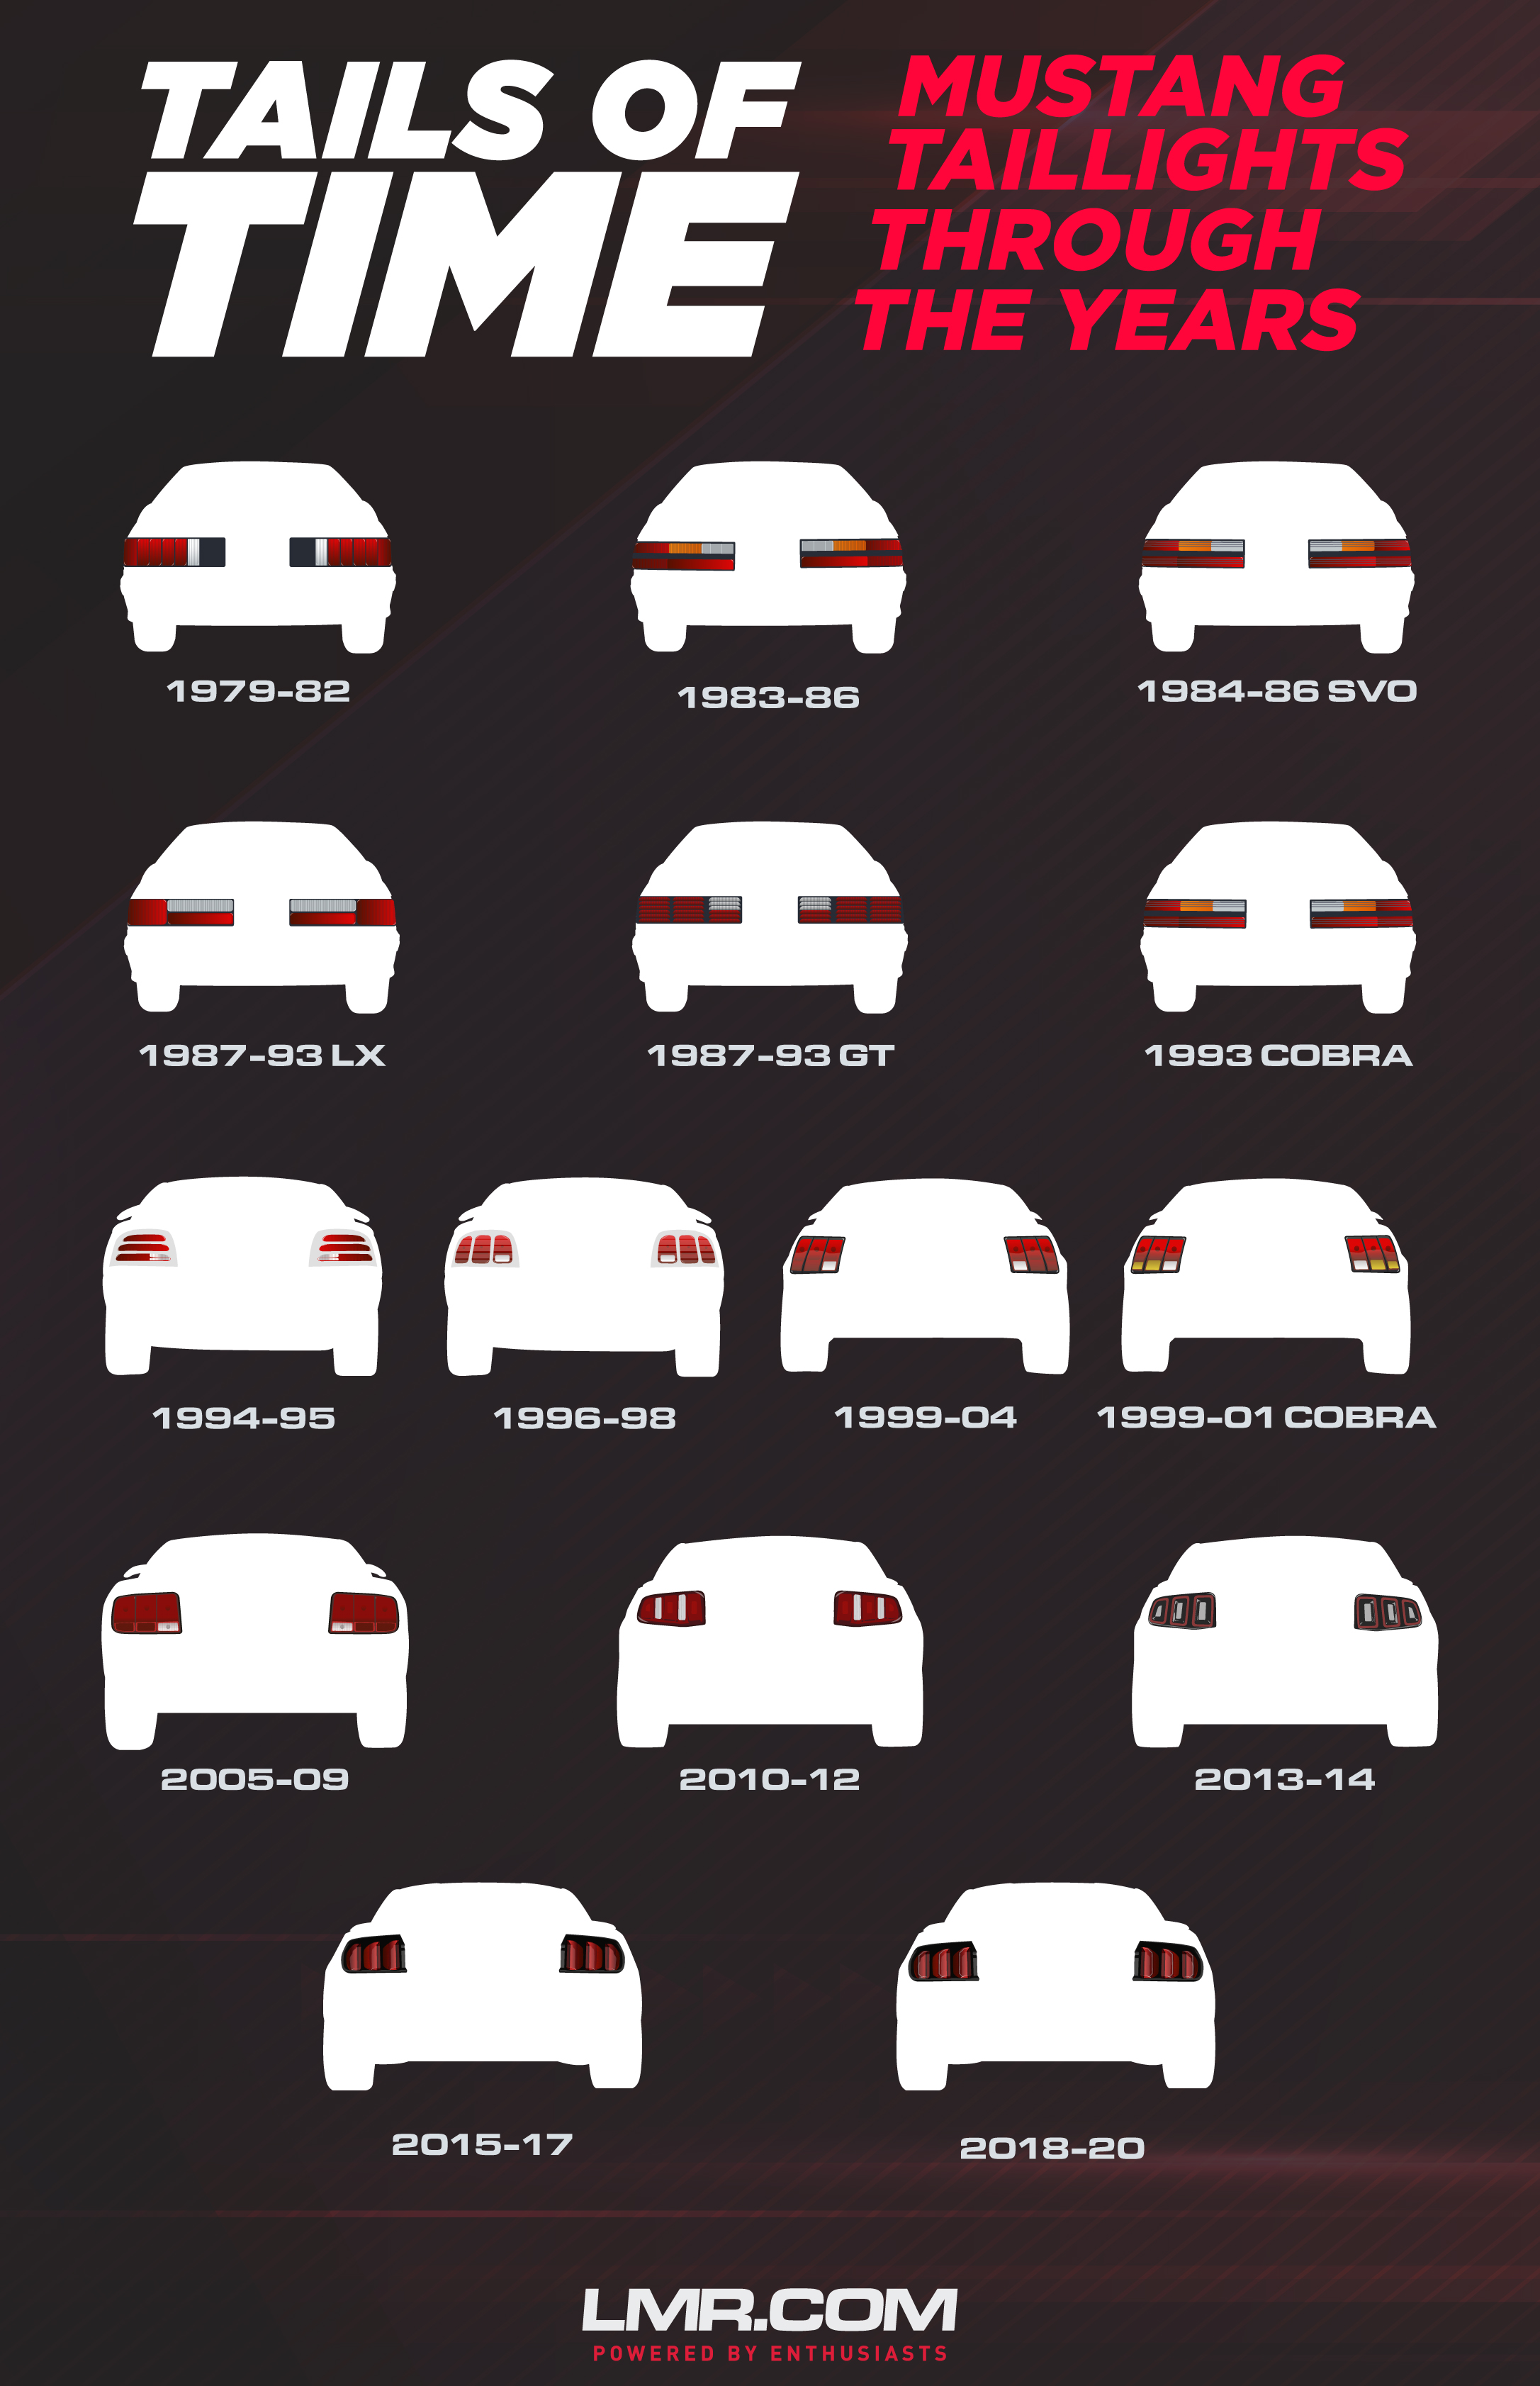 Ford Mustang Tail Lights Through The Years (1979-2020) - Ford Mustang Tail Lights Through The Years (1979-2020)